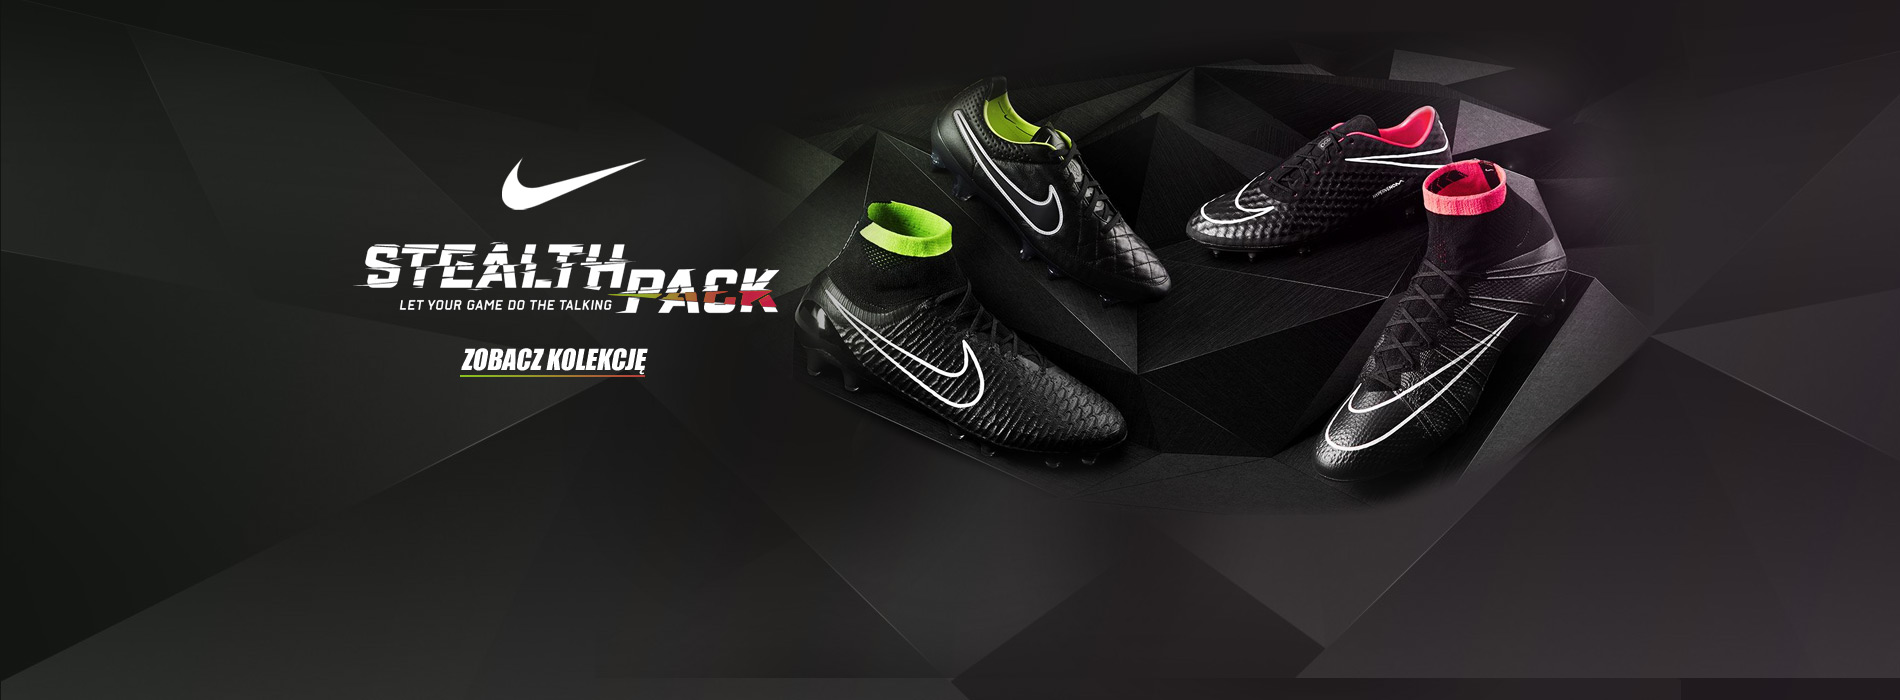 Nike Stealth Pack